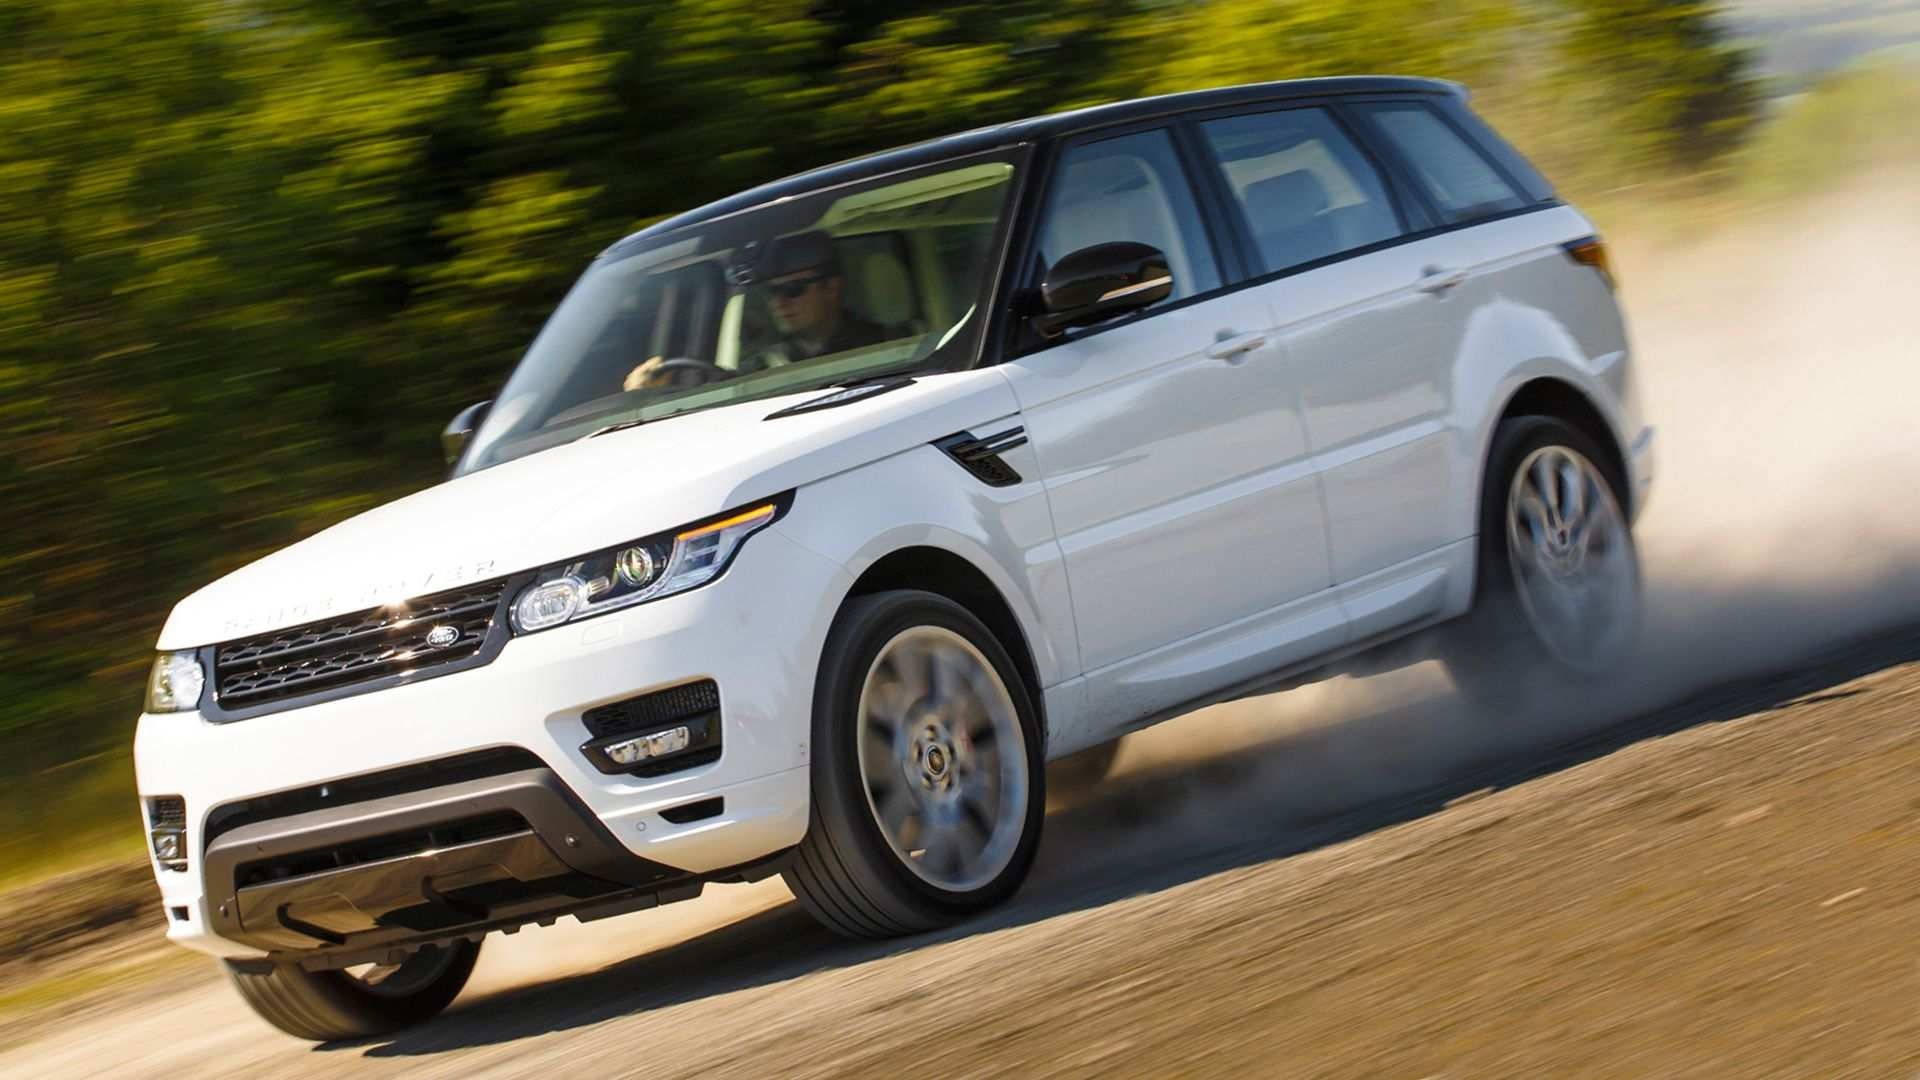 85 New 2019 Land Rover Price Specs and Review for 2019 Land Rover Price